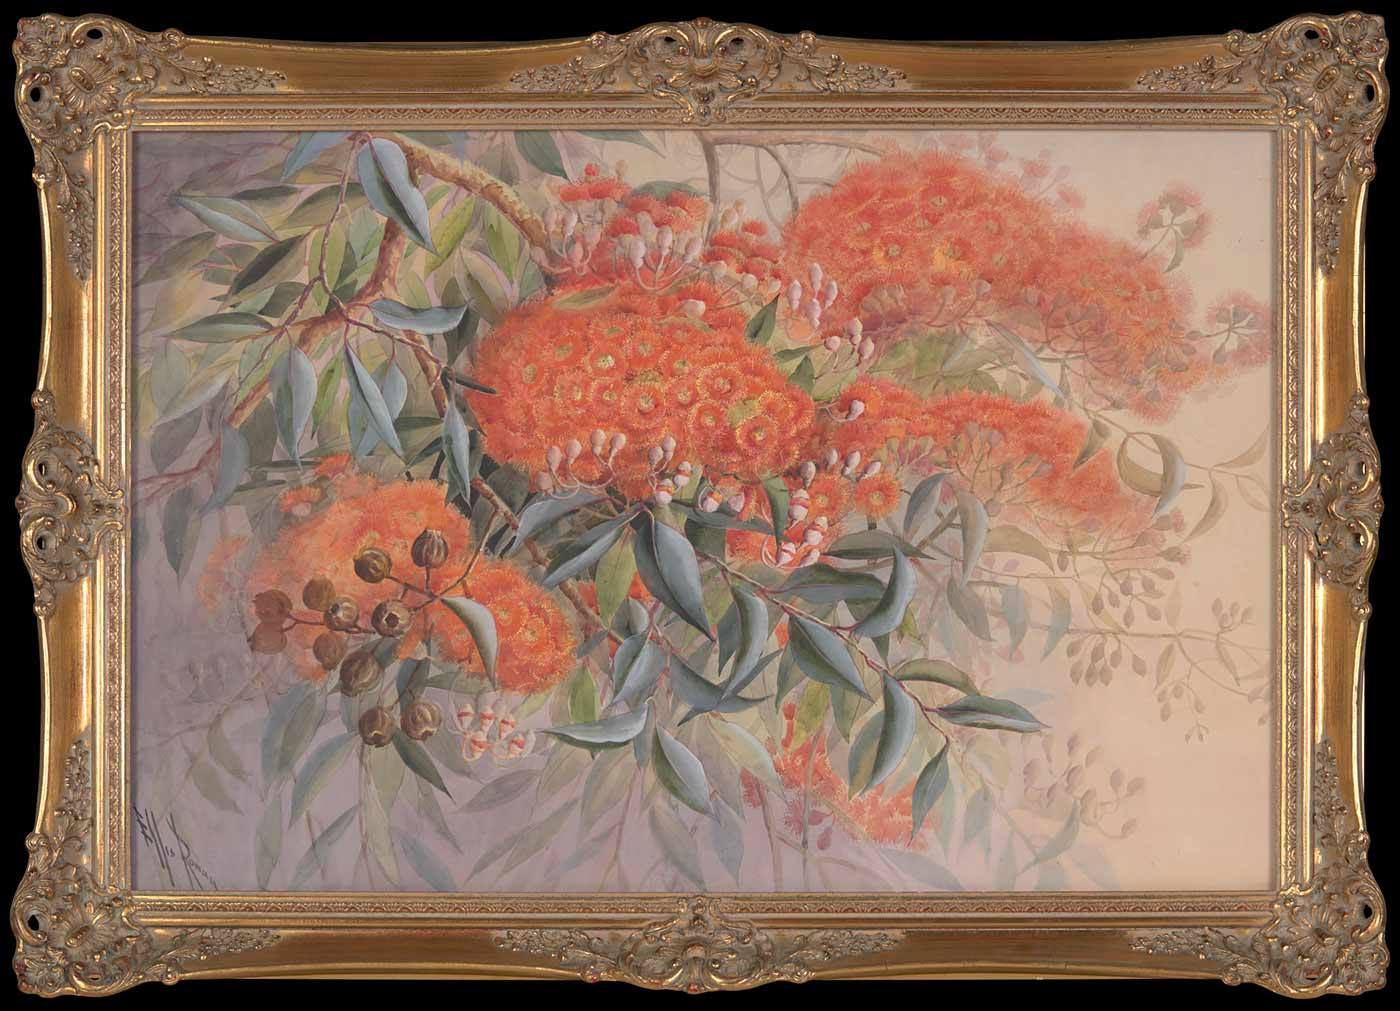 A large water colour of vivid flowering orange blossoms contrasting on a branch with silvery gum leaves and gumnuts. Ornate gilt frame. Marks/inscriptions: Signed Ellis Rowan bottom left hand corner. - click to view larger image